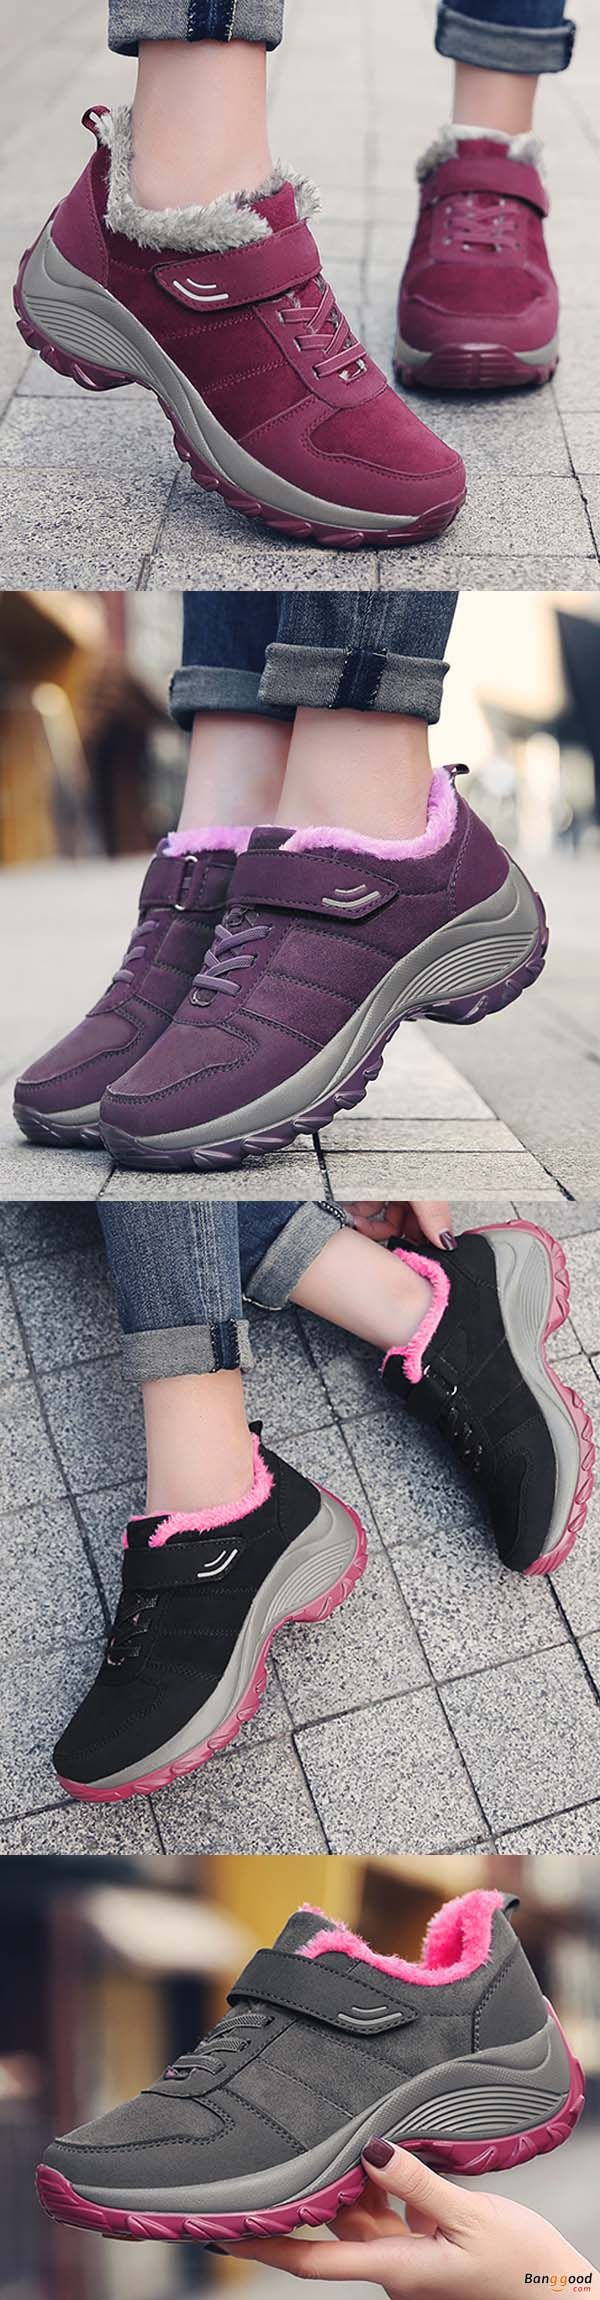 I love those fashionable and stylish boots from banggood.com. Find the most suitable and comfortable Women's Shoes at incredibly low prices here. #shops #style #ideas #womens #shoes #boots #snow #diy #plussize #outfit #ankle #short #guide #winter #cheap #hunter #2017 #fashion #howtowear